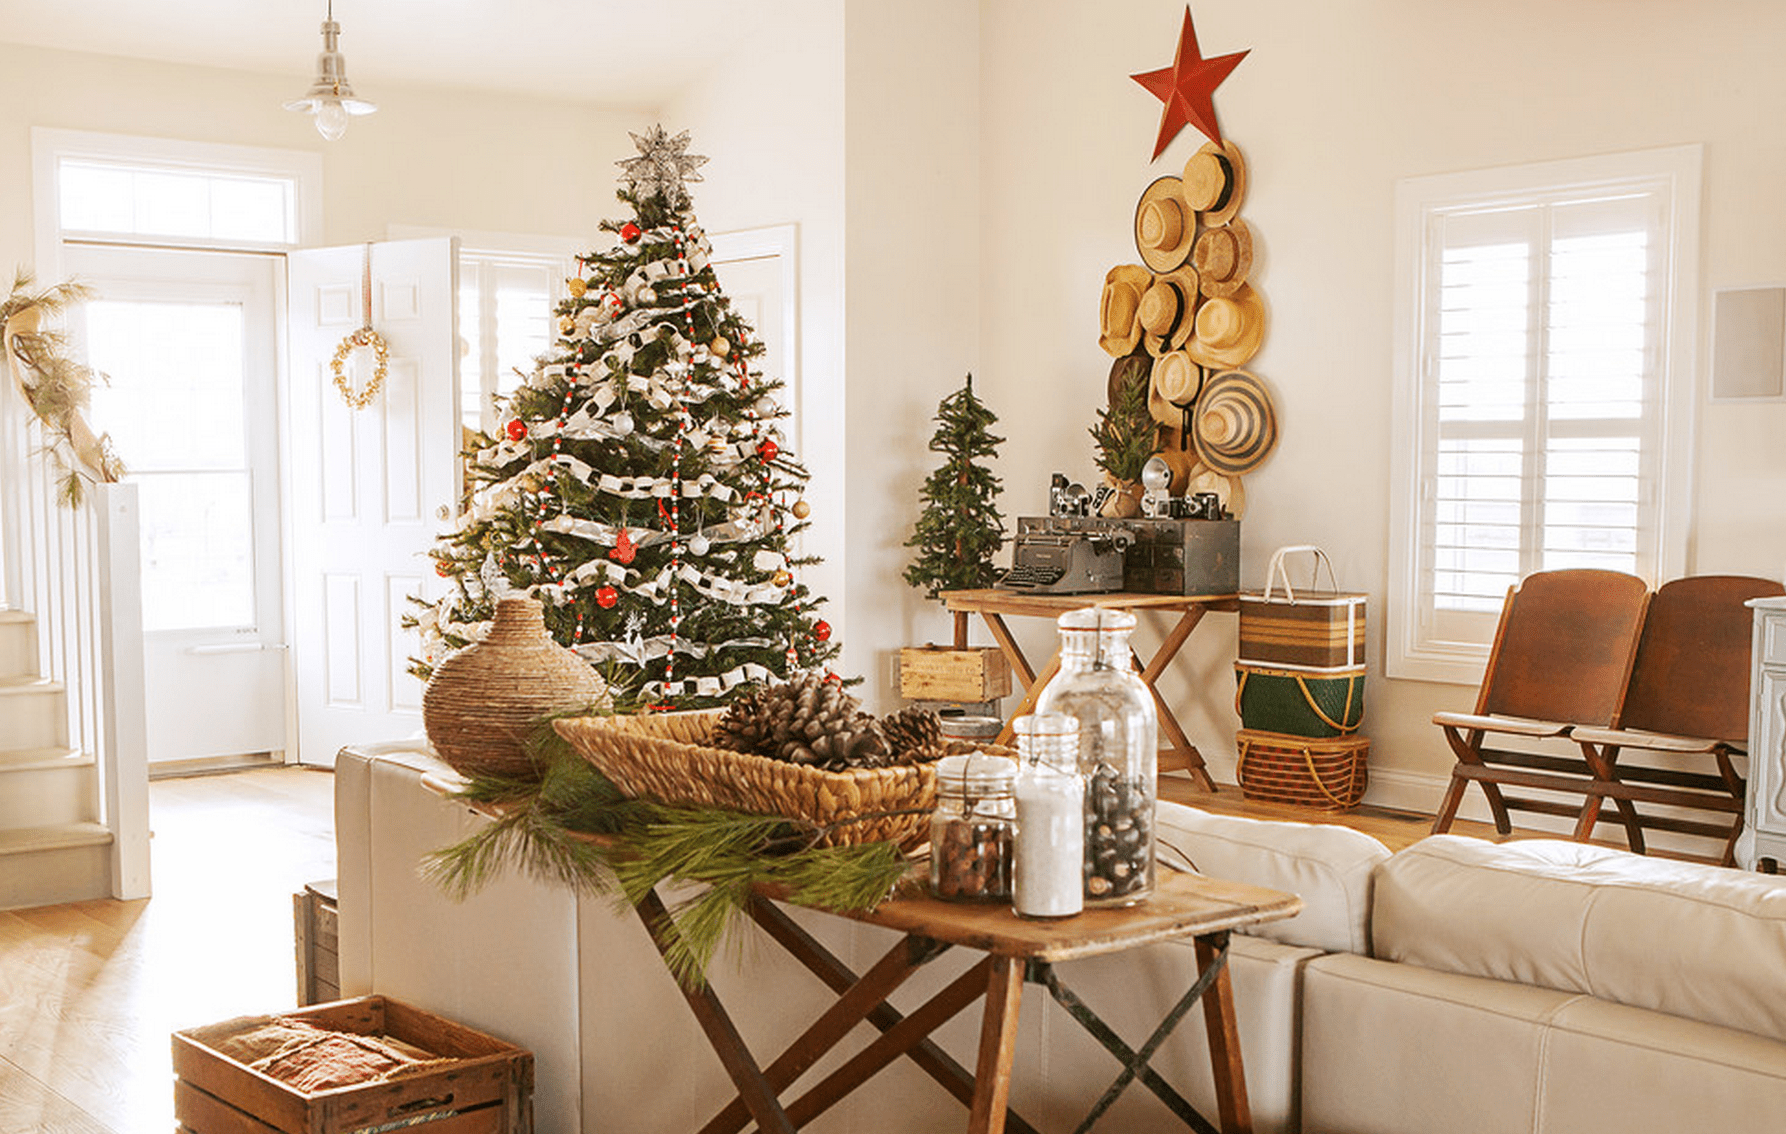 Try Decorating For Christmas With A Theme This Year